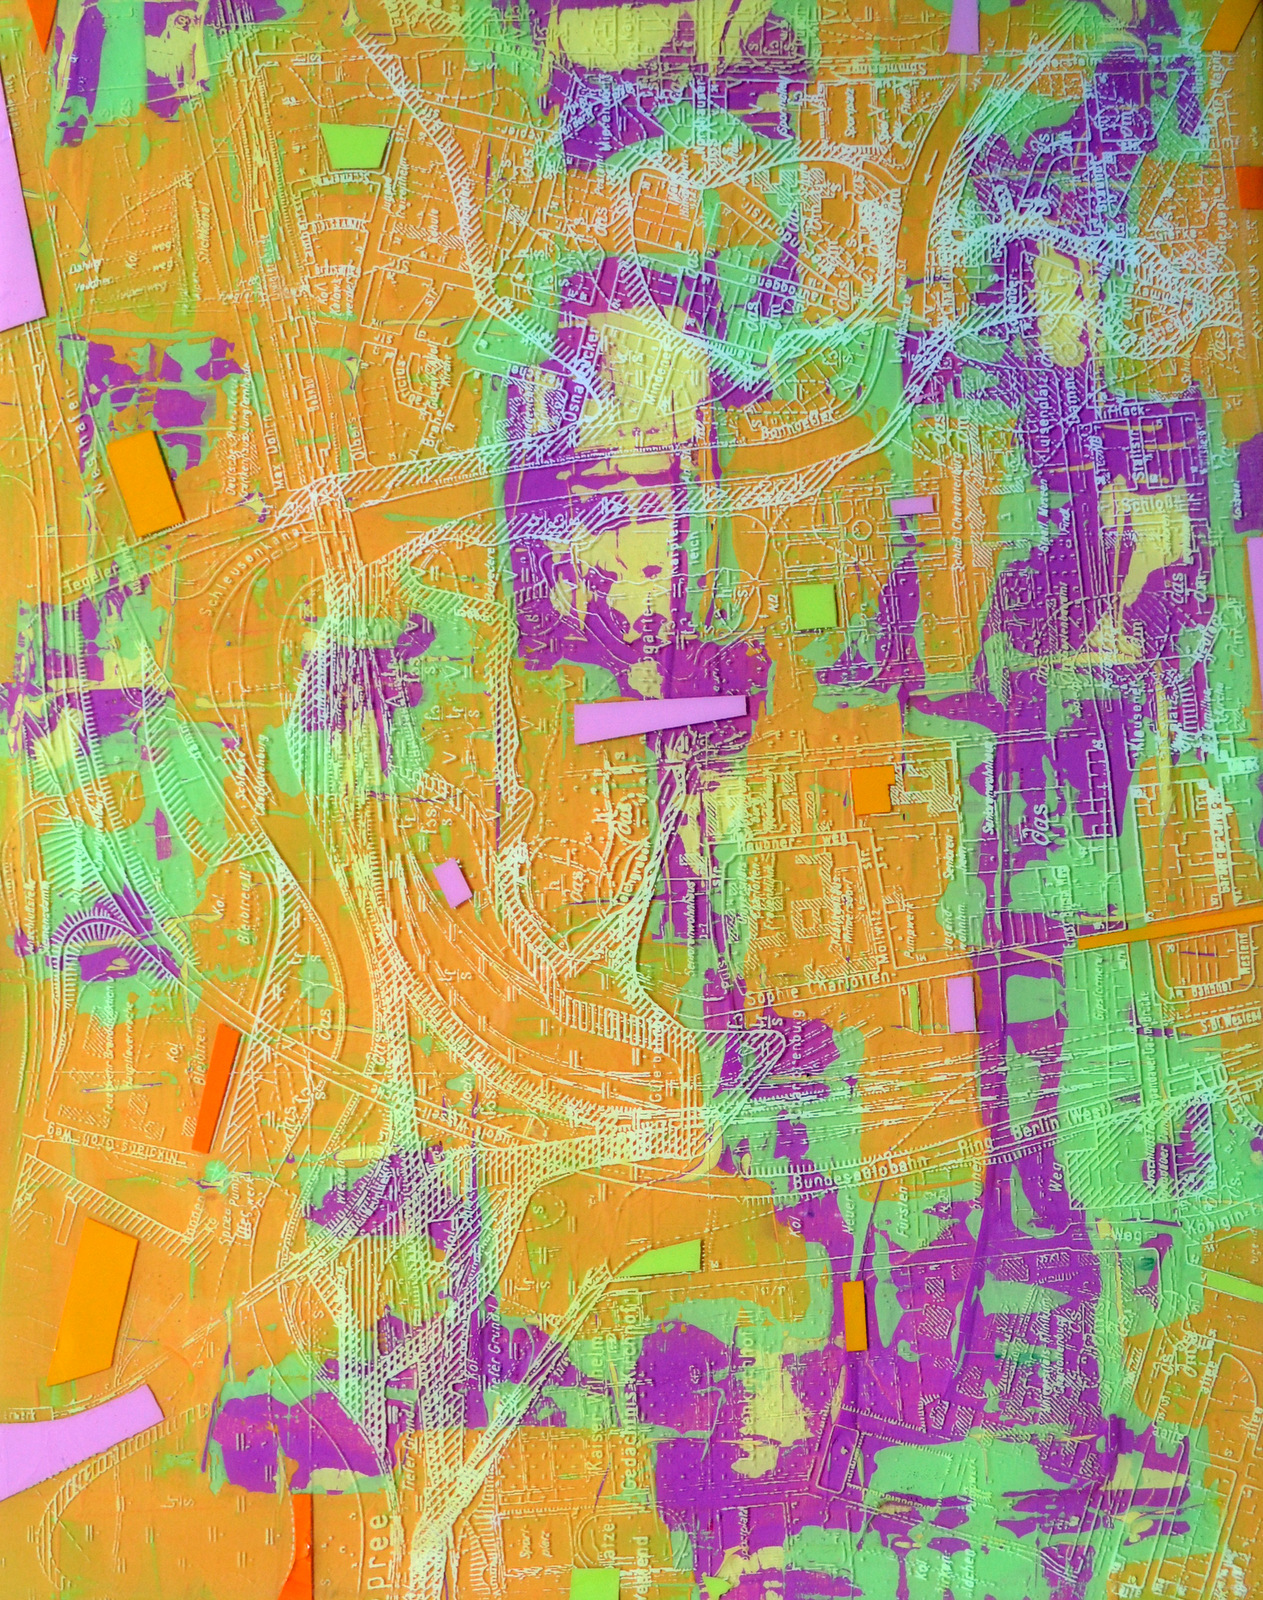 PRENZLAUER BERG IV - 20X16 - ACRYLIC/RESIN ON PANEL - 2013